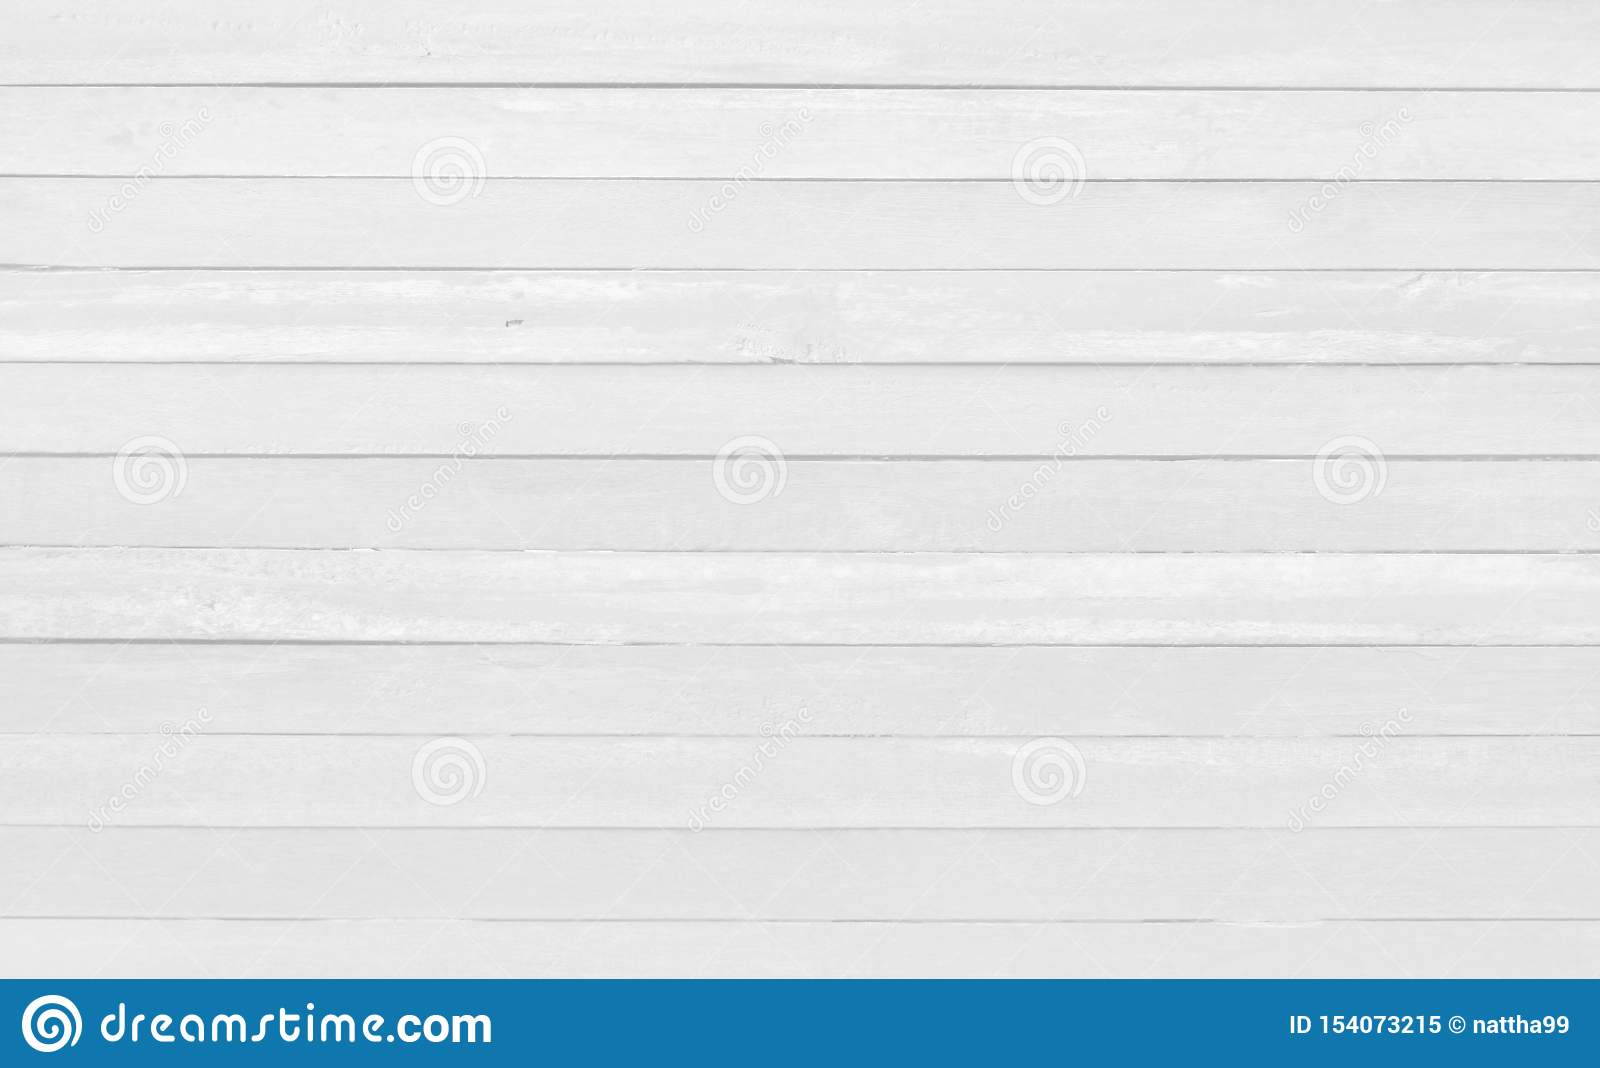 Vintage painted wooden wall background, texture of white grey color with old natural pattern for design art work